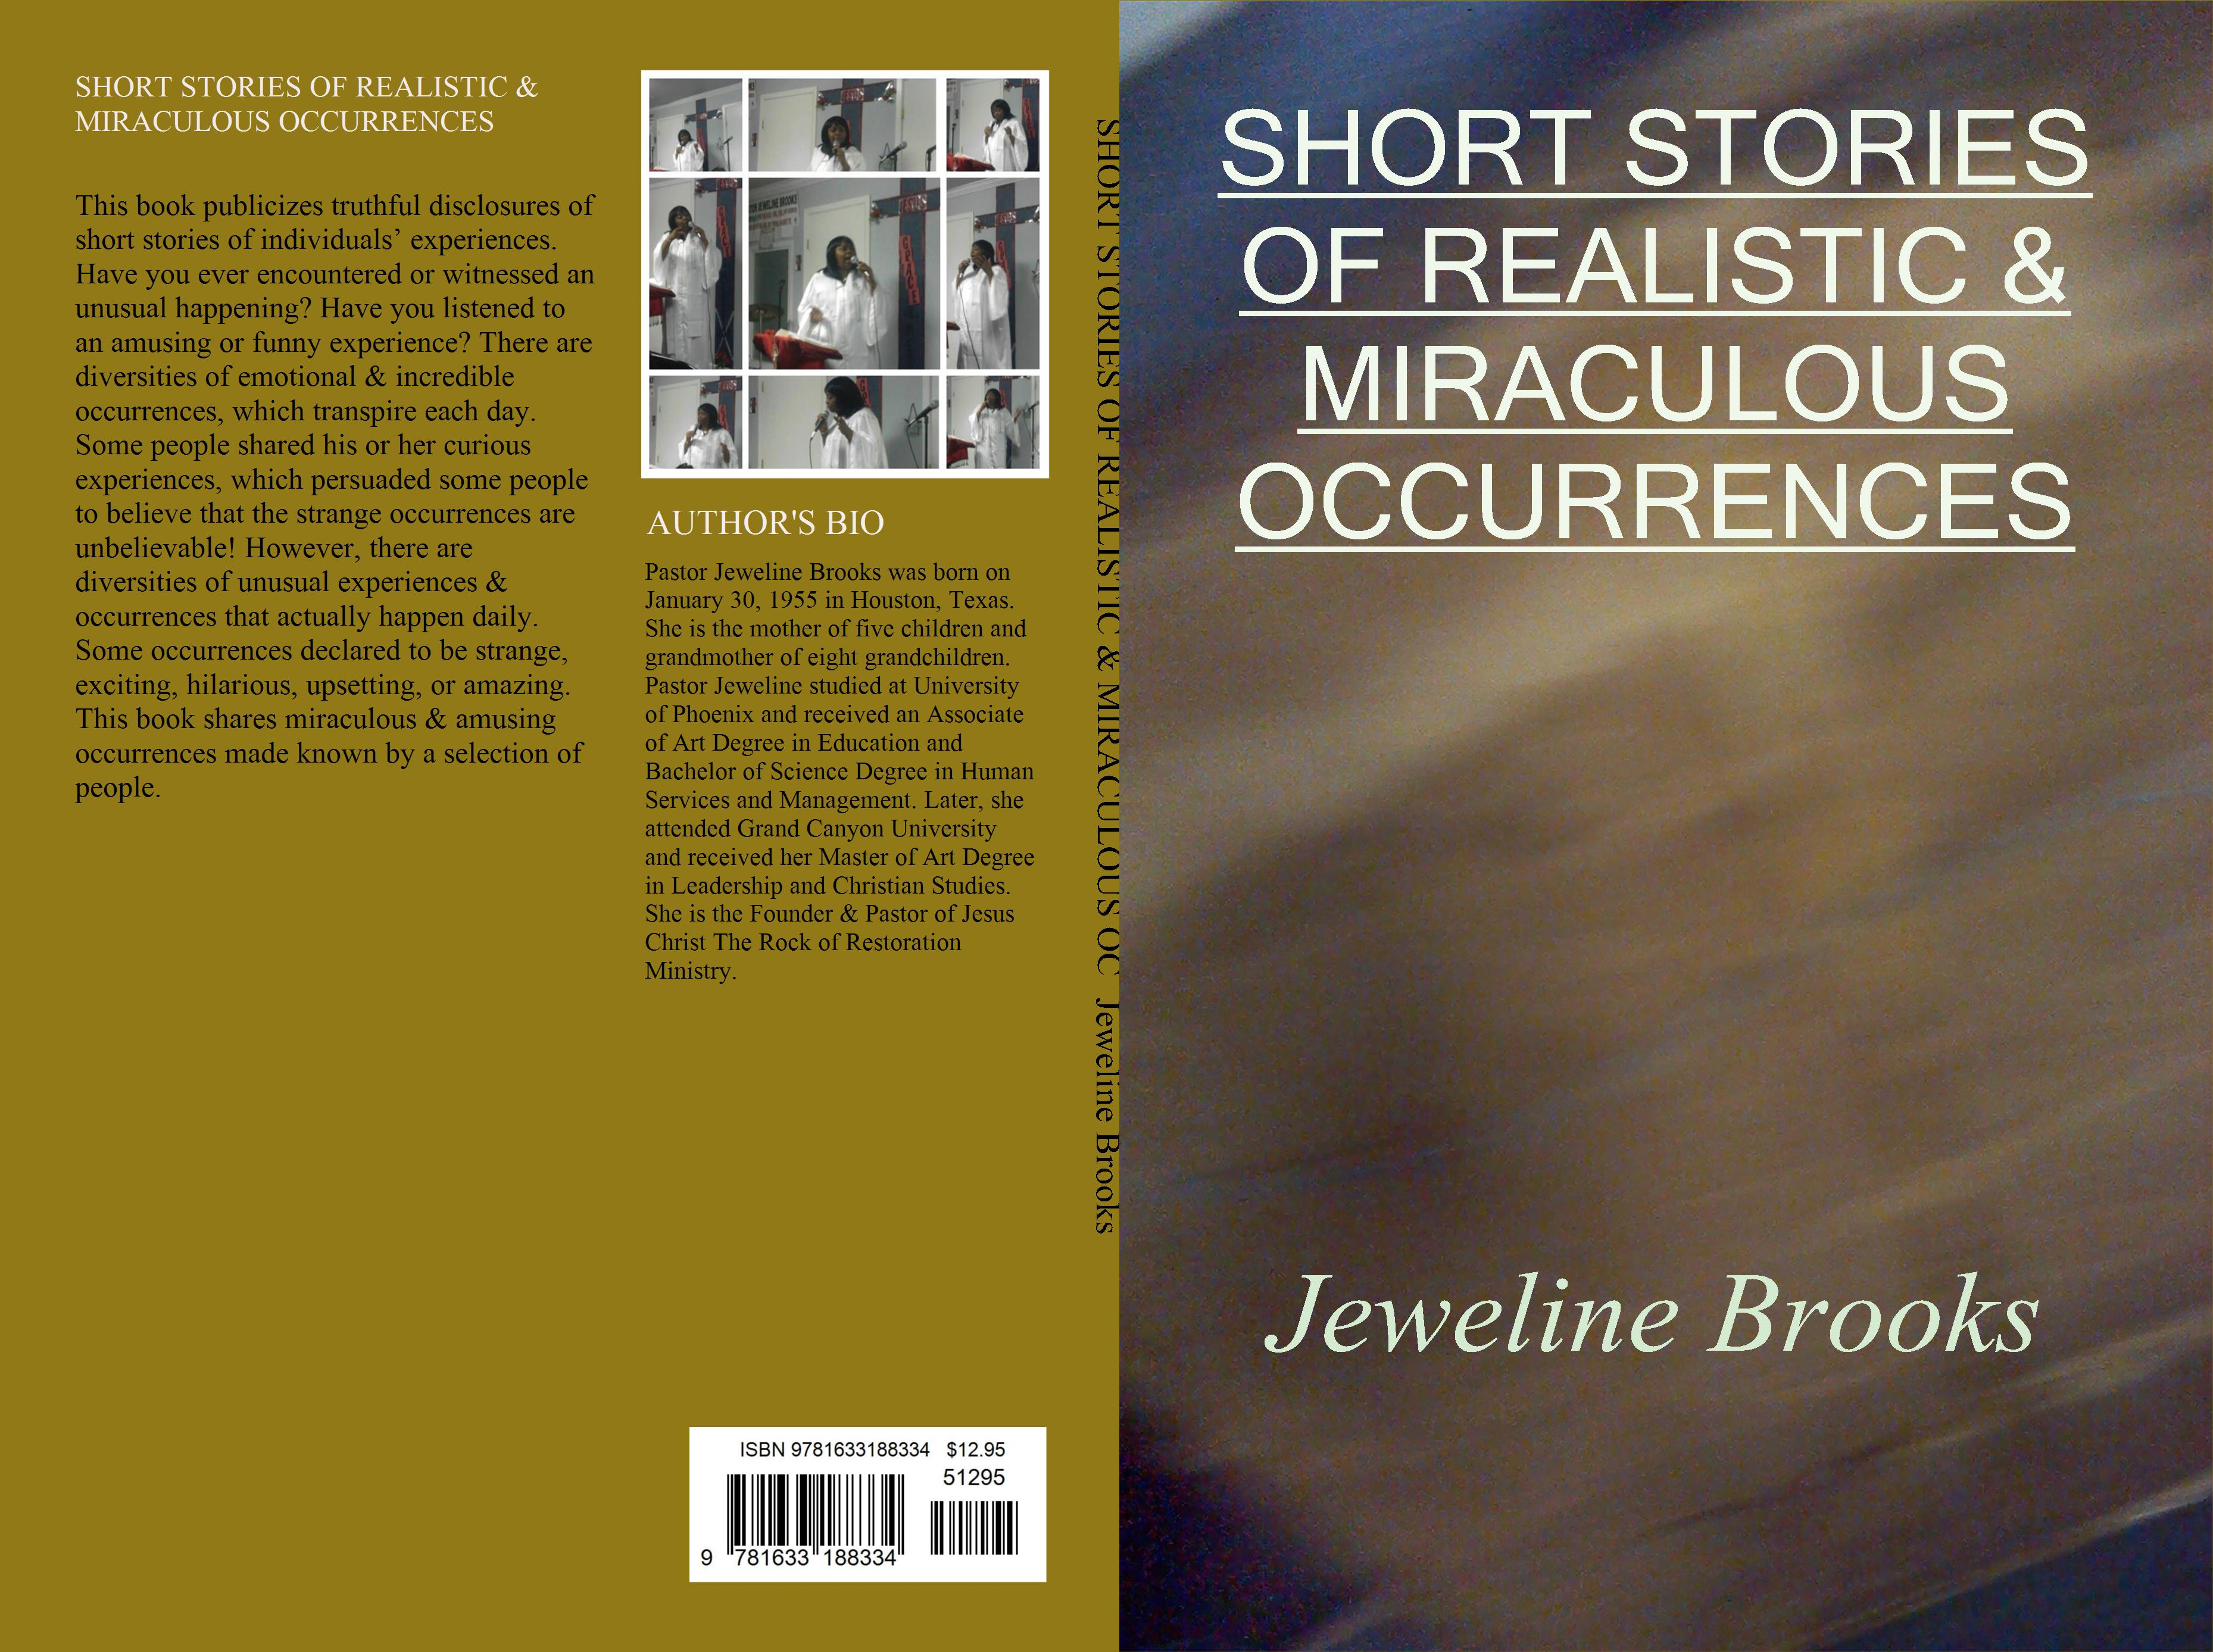 SHORT STORIES OF REALISTIC & MIRACULOUS OCCURRENCES cover image